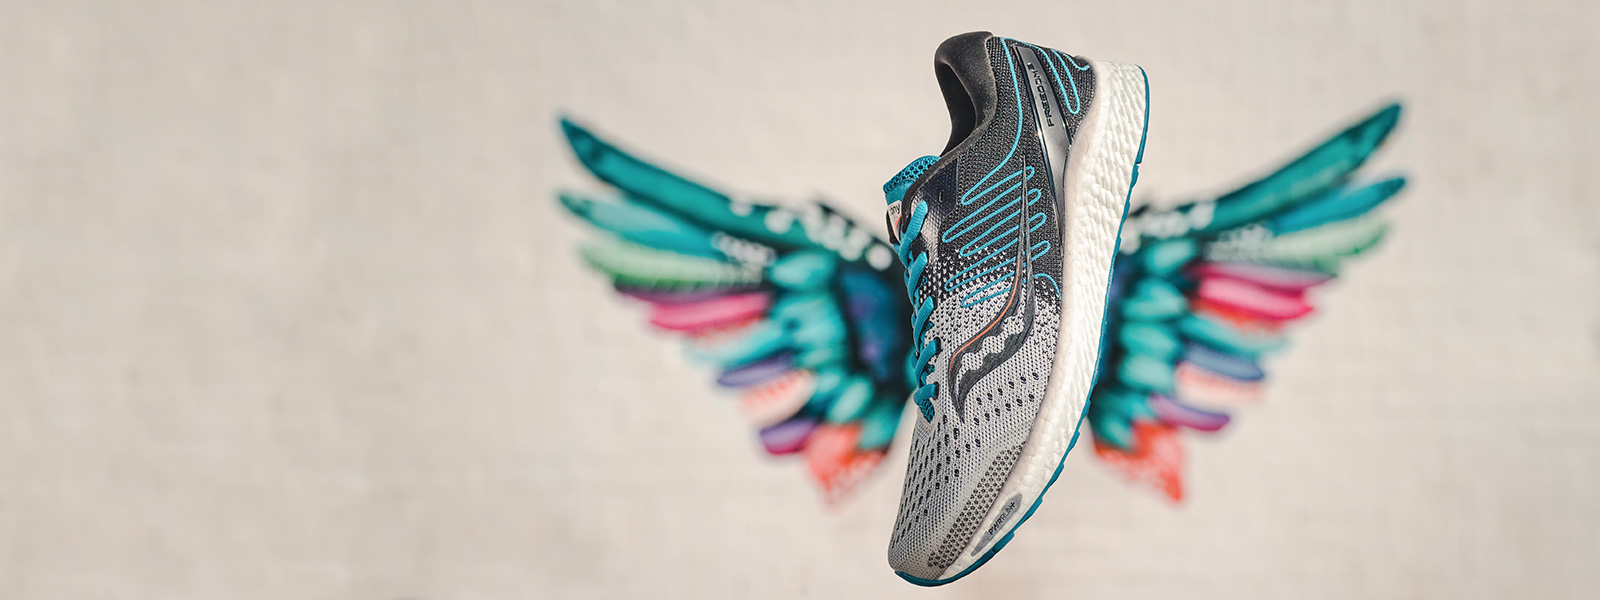 Freedom 3 shoe in front of colorful bird wings art.